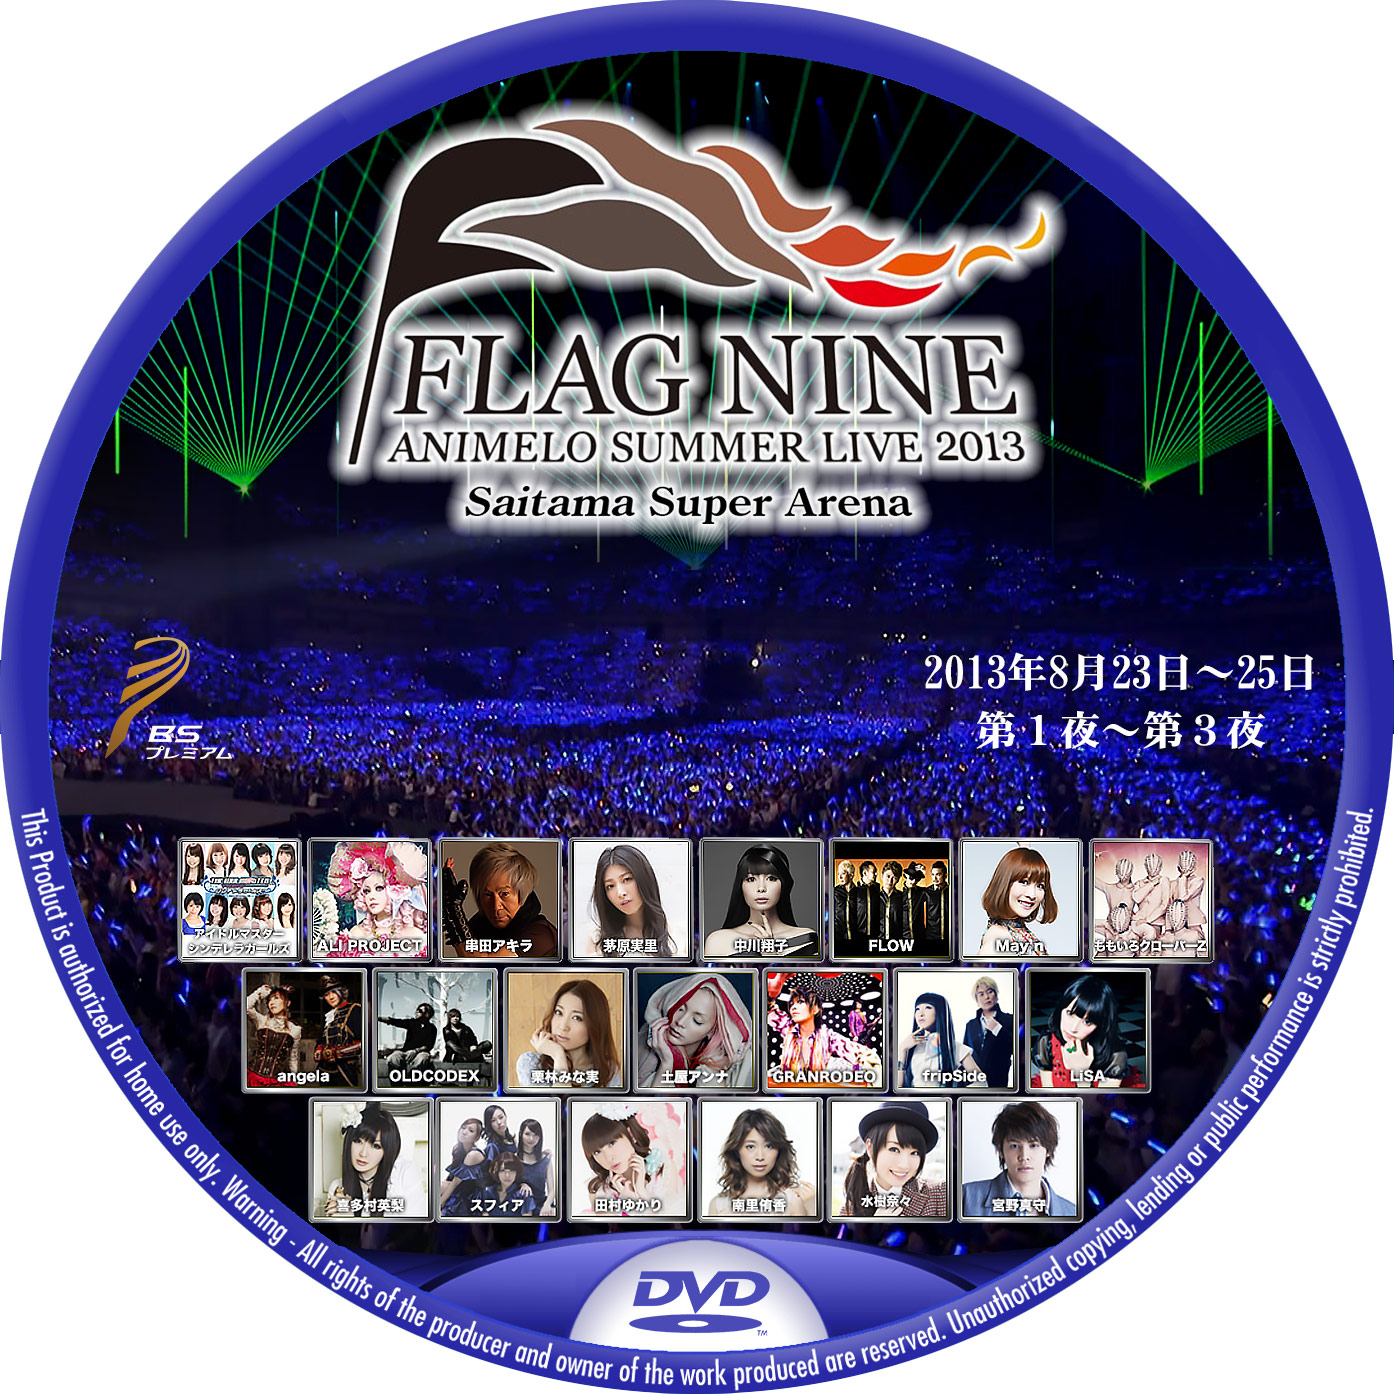 Animelo Summer Live 2013 DVDラベル